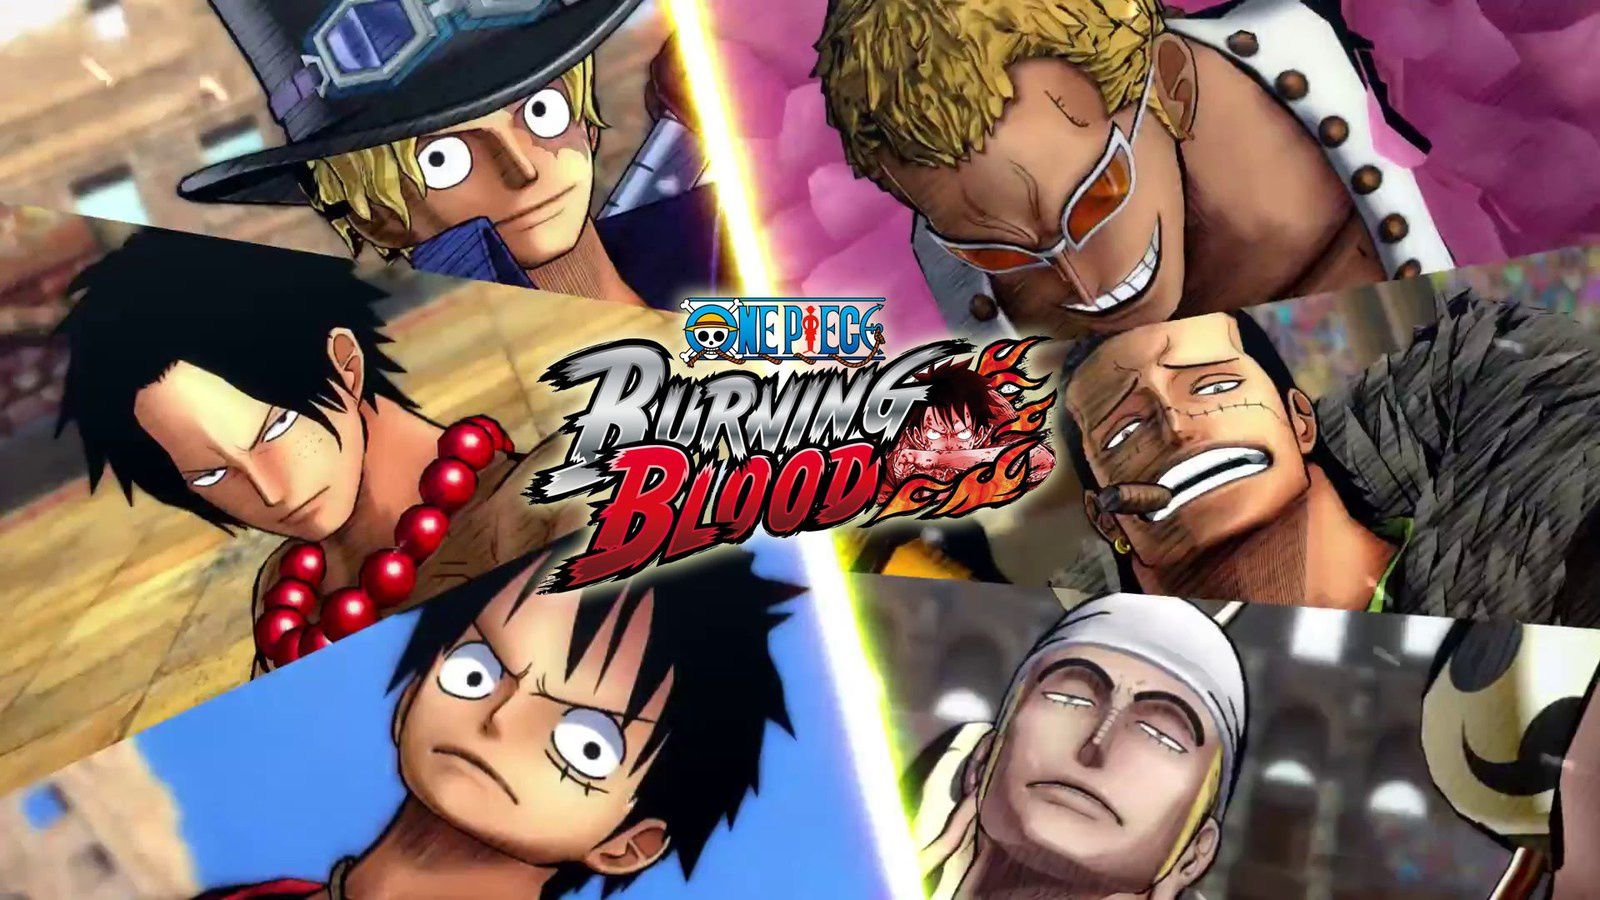 [MON AVIS] One Piece Burning Blood